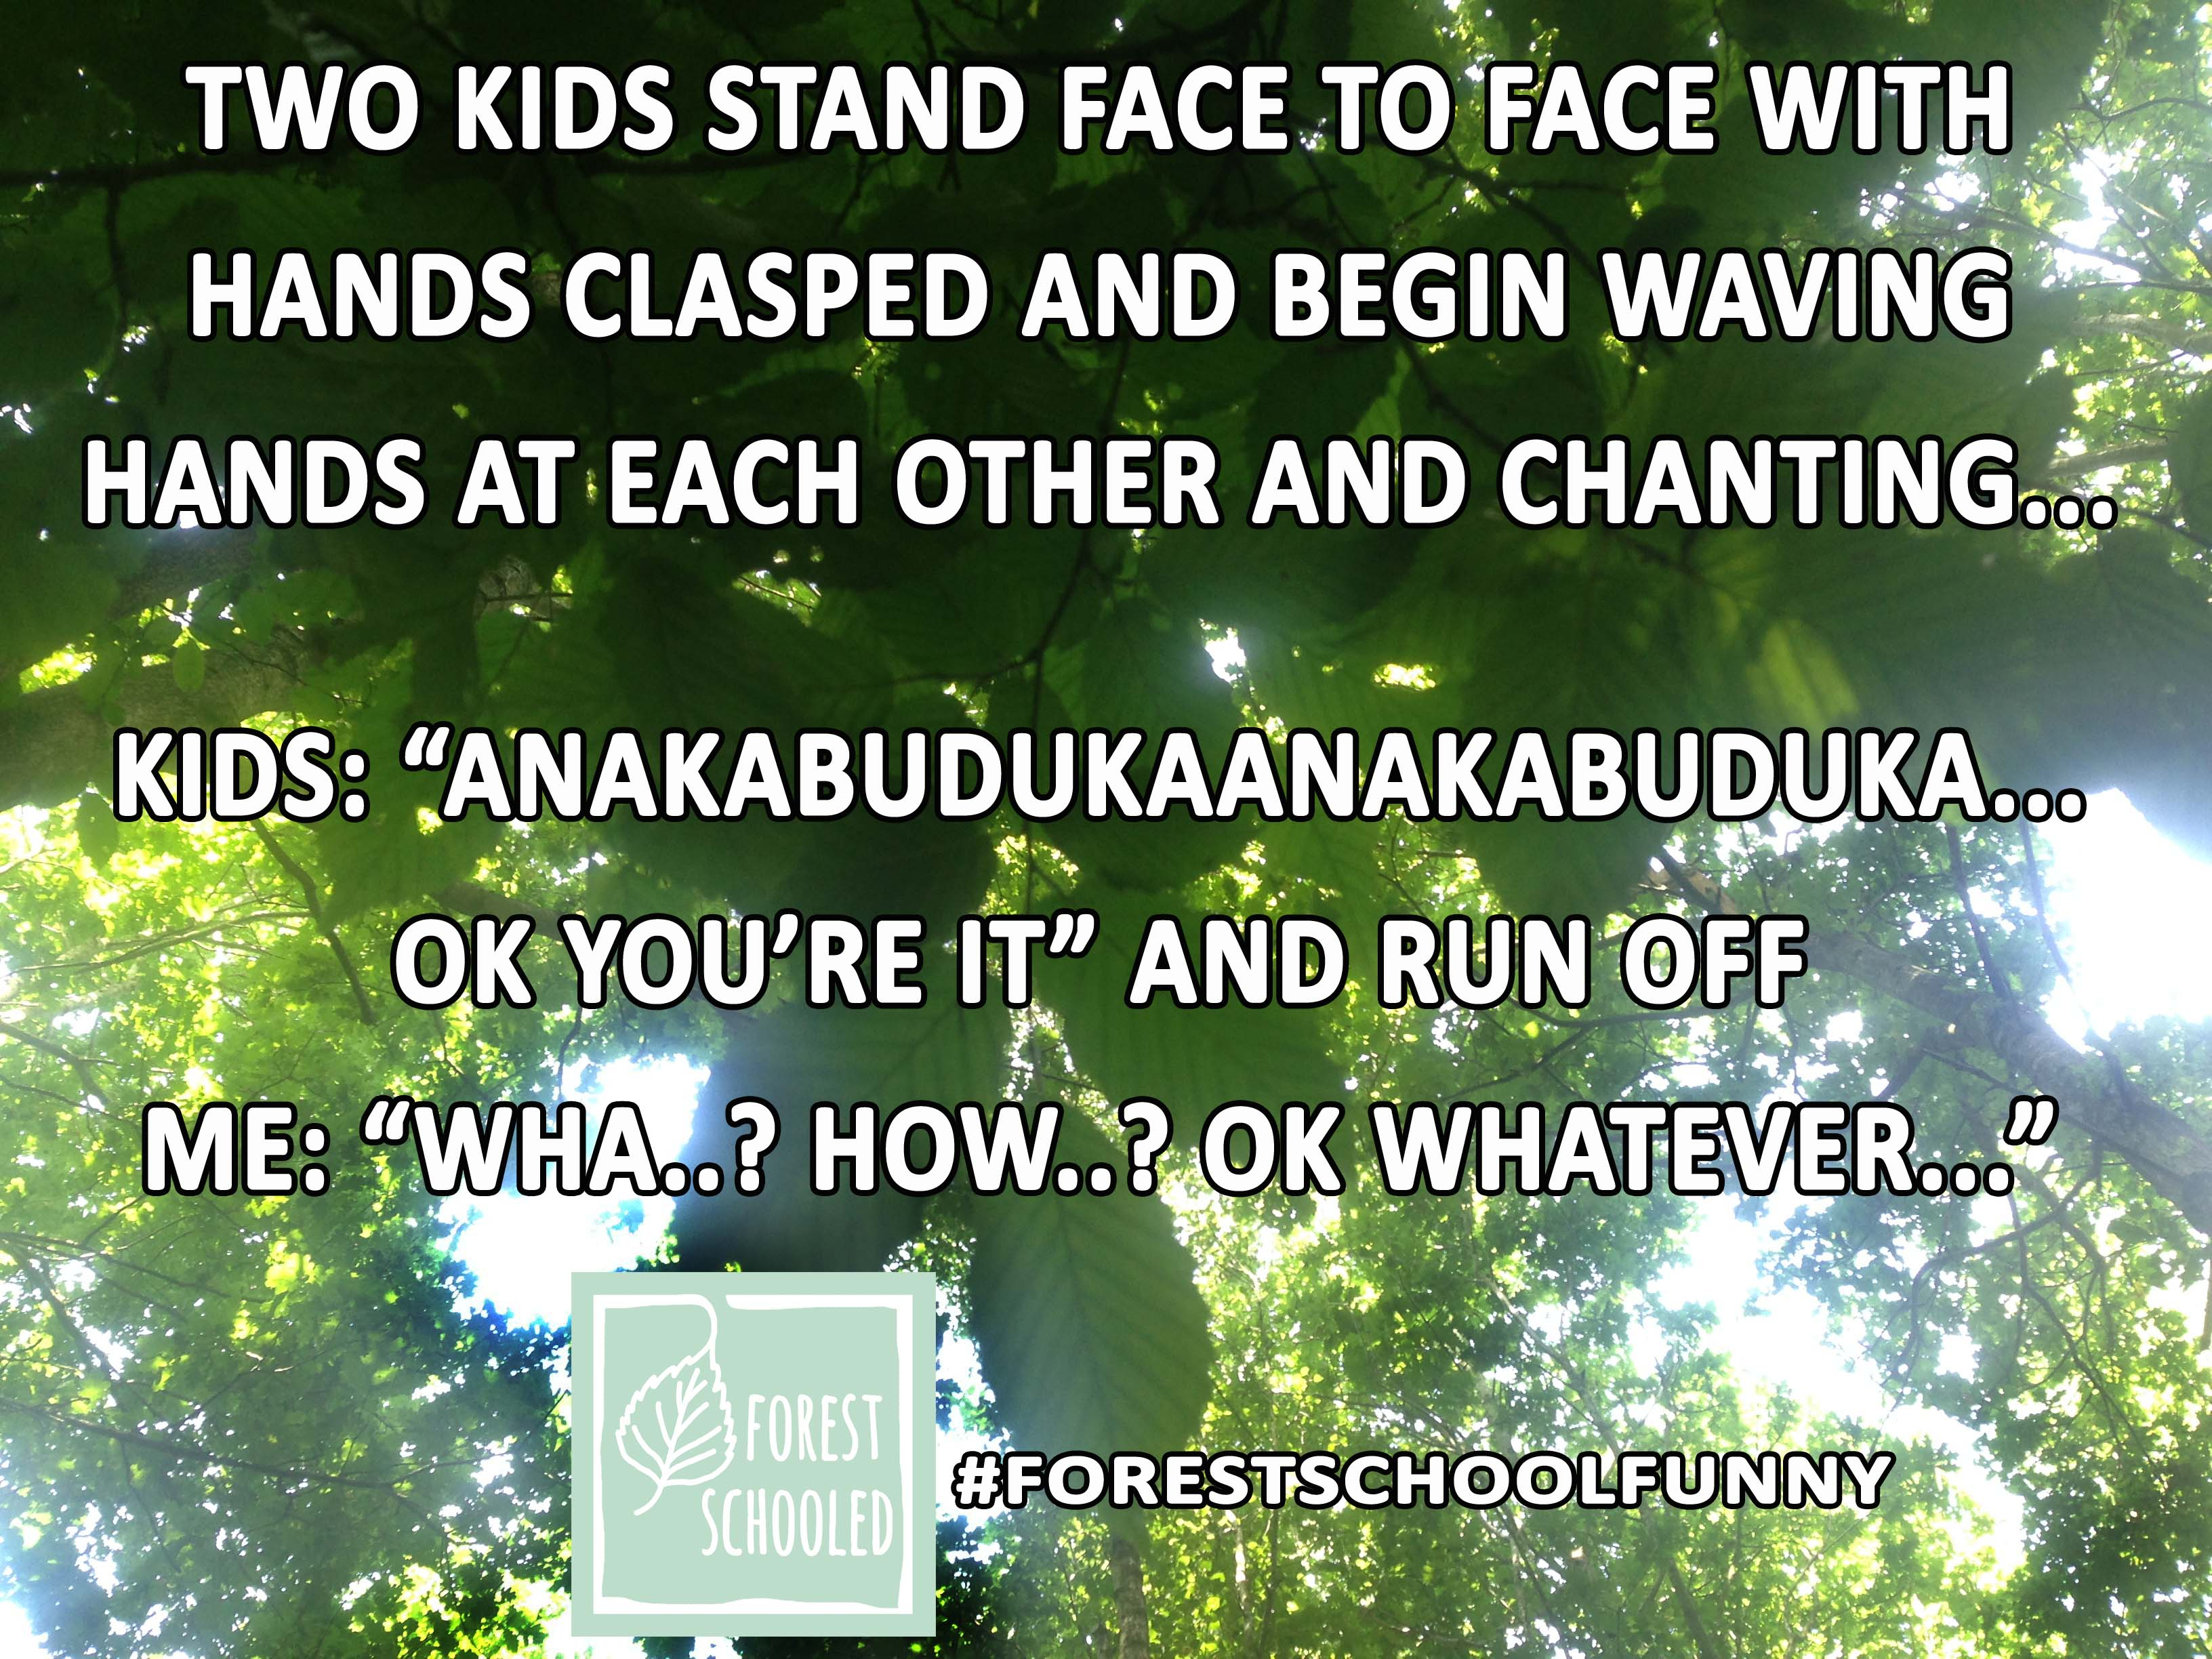 Forest School Funny7